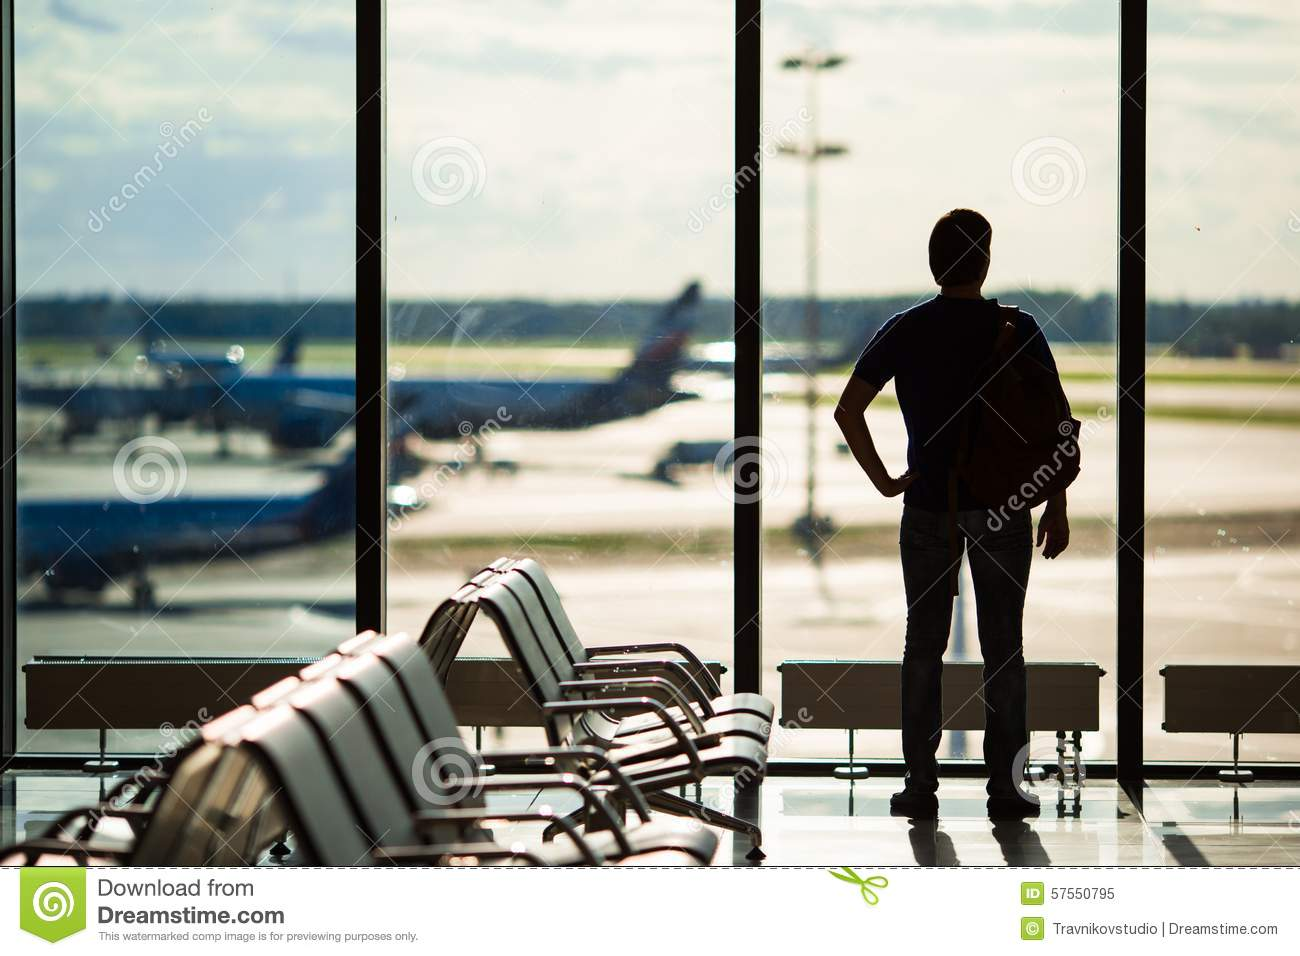 Silhouette of a man waiting to board a flight in